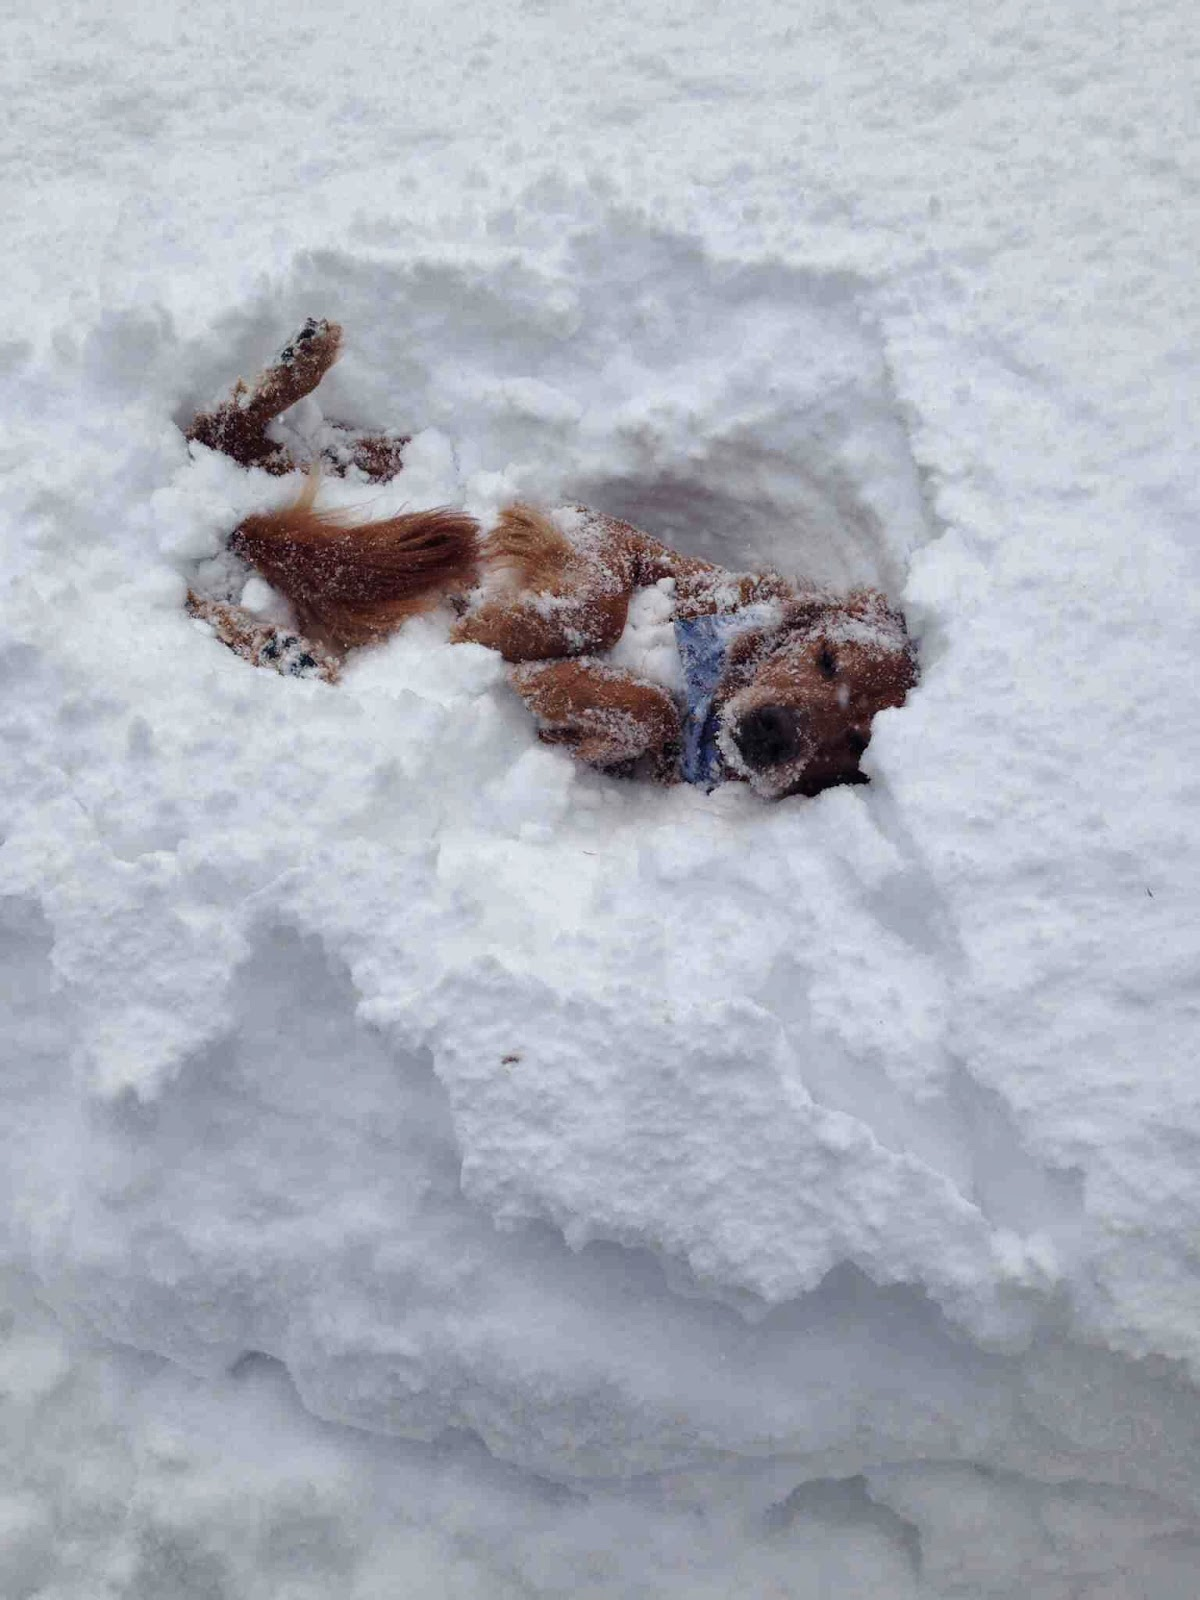 Cute dogs - part 8 (50 pics), dog playing in the snow